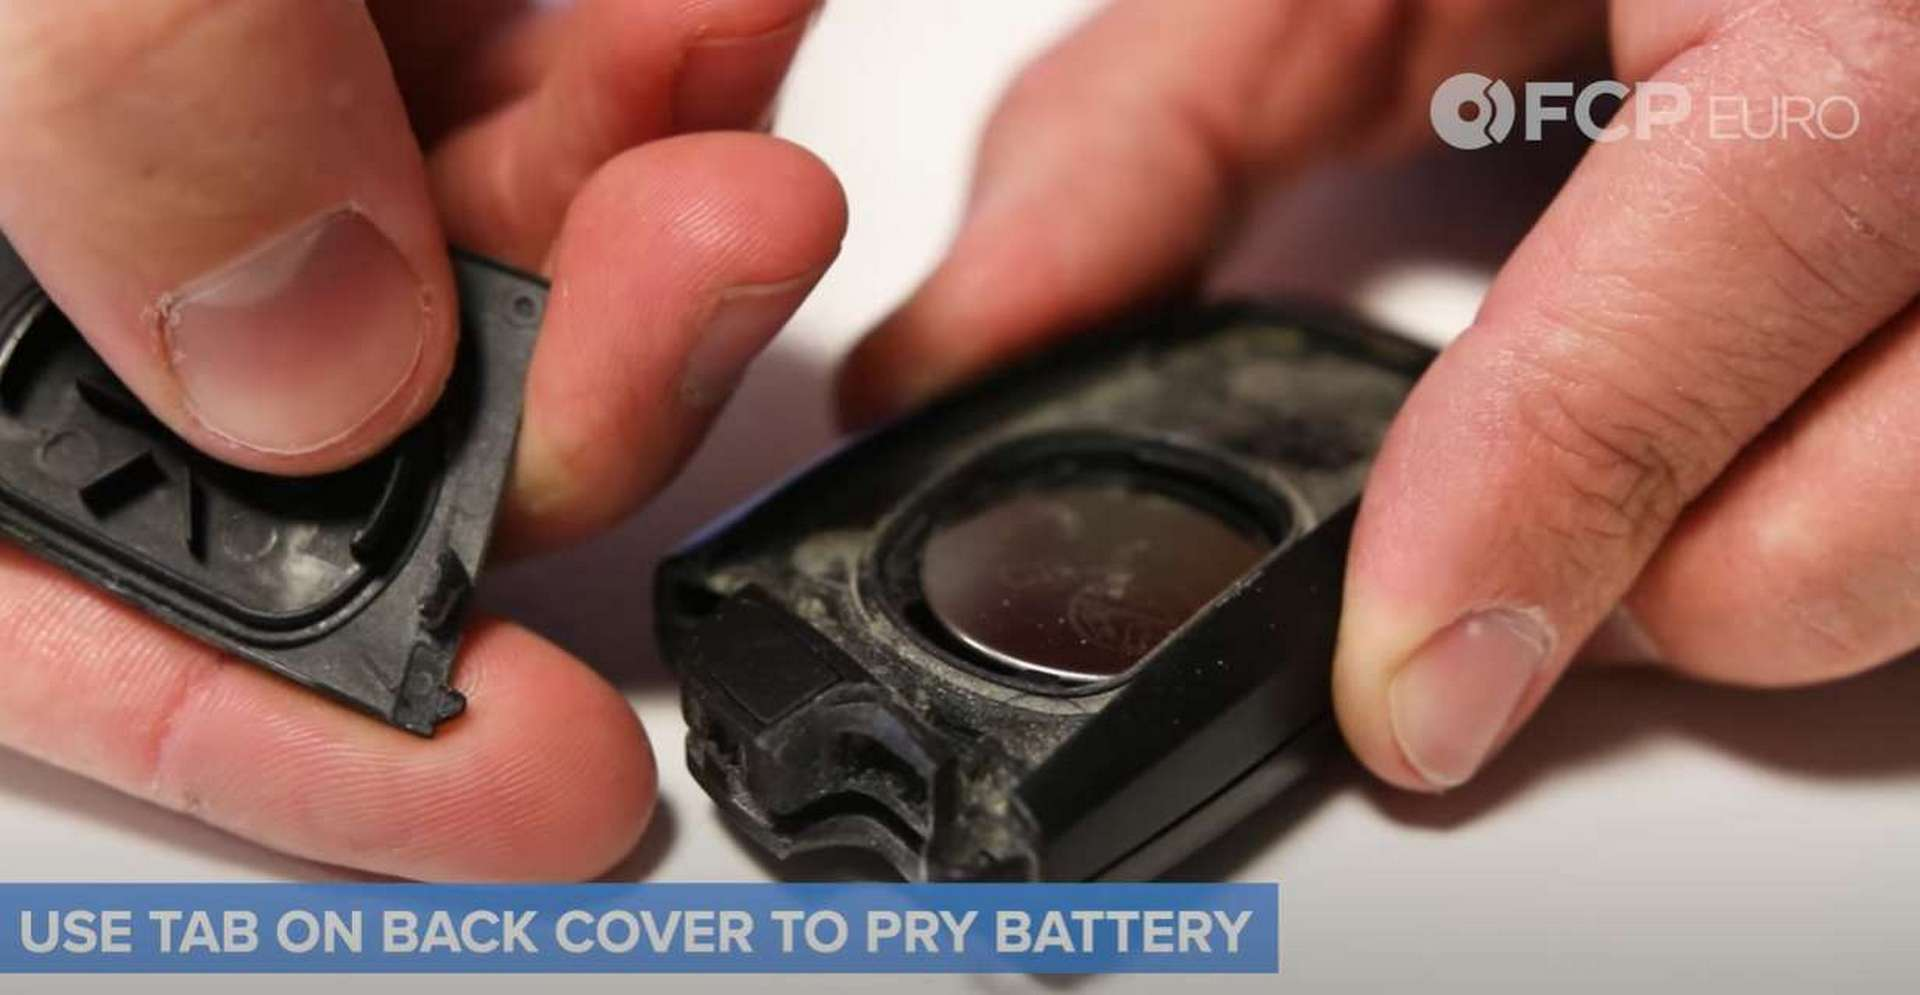 BMW F30 Key Fob Battery Replacement removing the emergency key